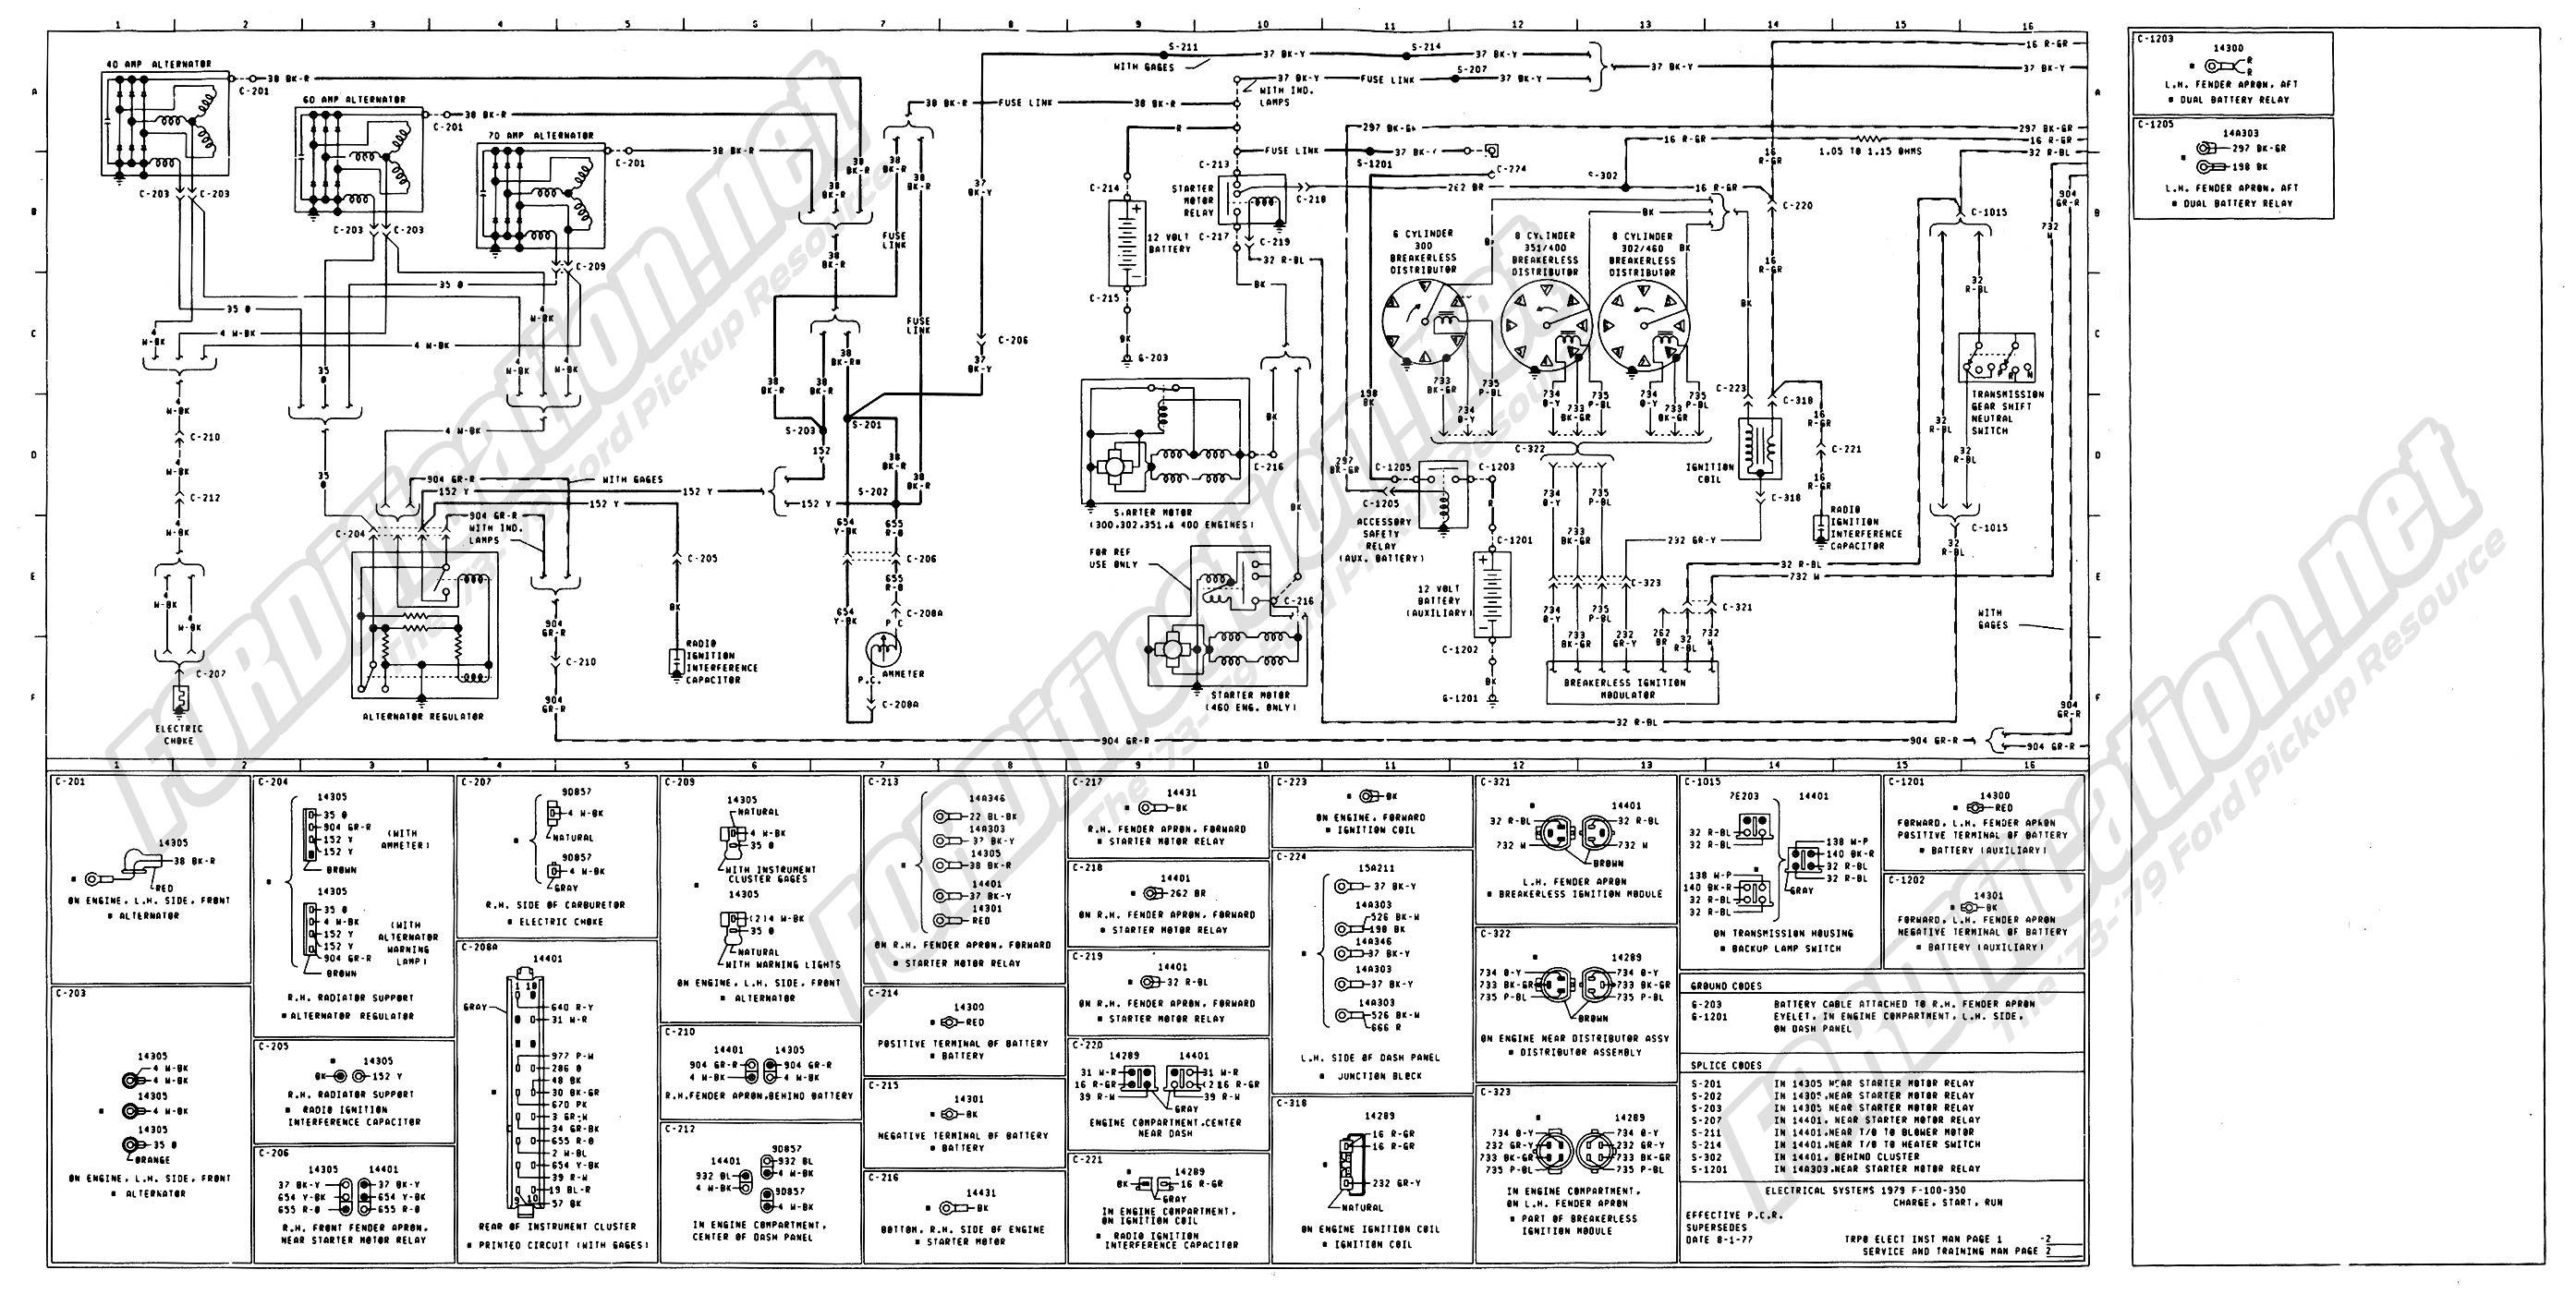 92 f150 engine diagram wiring diagram 92 ford f150 drive shaft wrg 1641] 92 ford f 150 engine bay diagram